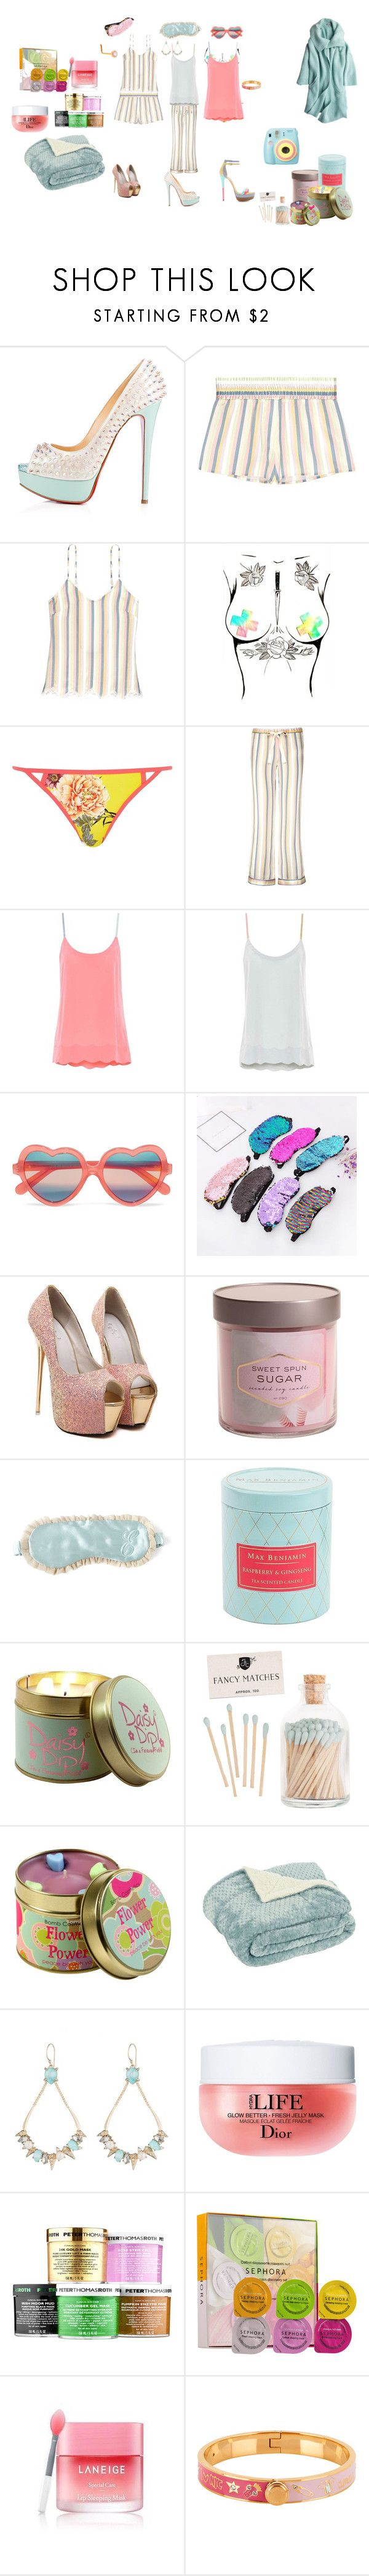 """sweet dreams"" by mskillgalore on Polyvore featuring Morgan Lane, 81hours, Ruthie Davis, Cutler and Gross, WithChic, Signature Soy, Max Benjamin, Lily-Flame, Hostess and Polaroid"